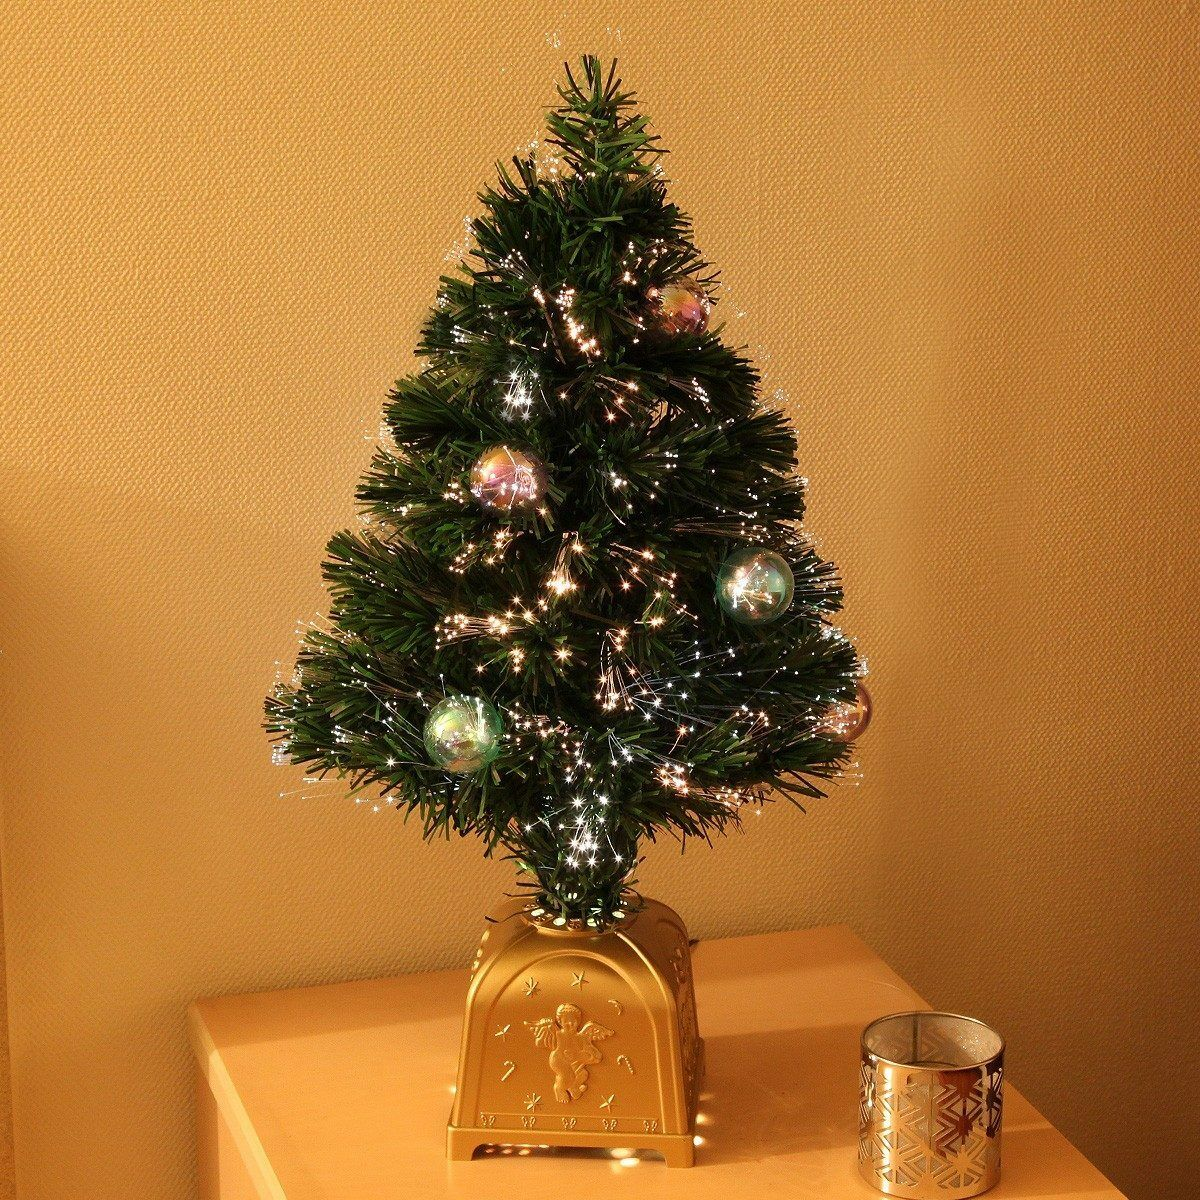 2ft Artificial Fibre Optic Table Top Christmas Tree Qith Bauble Decorations